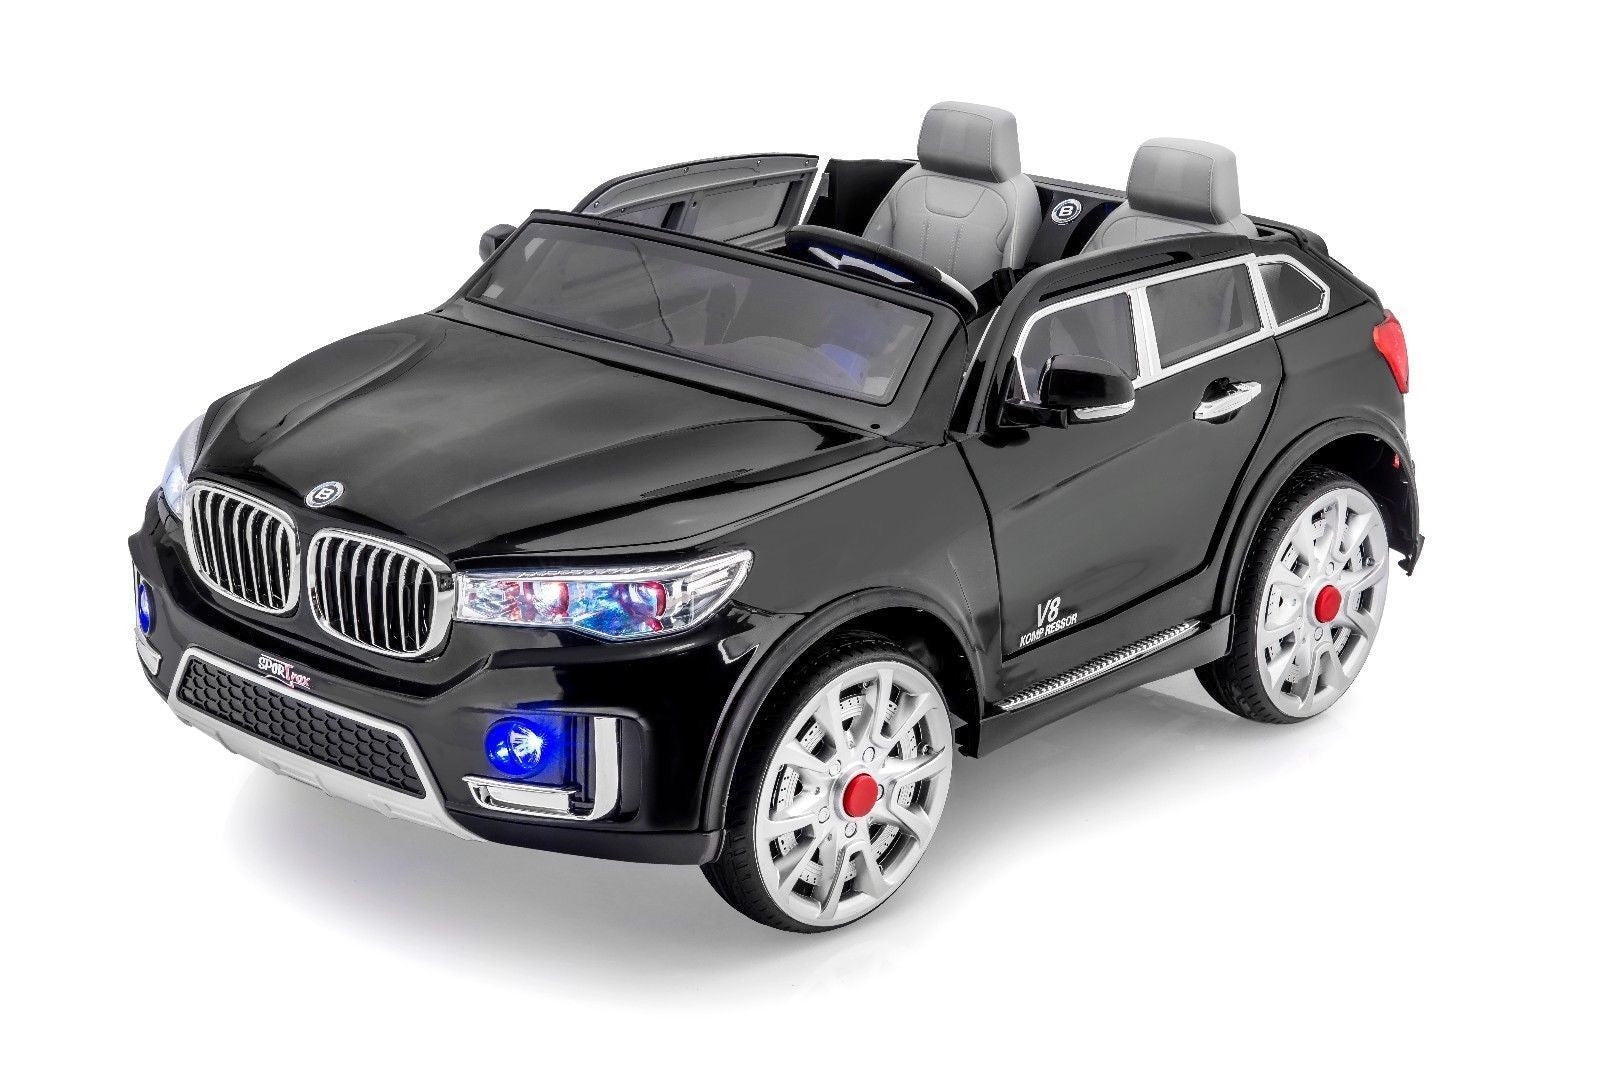 luxury x style 2 seat remote control ride on car